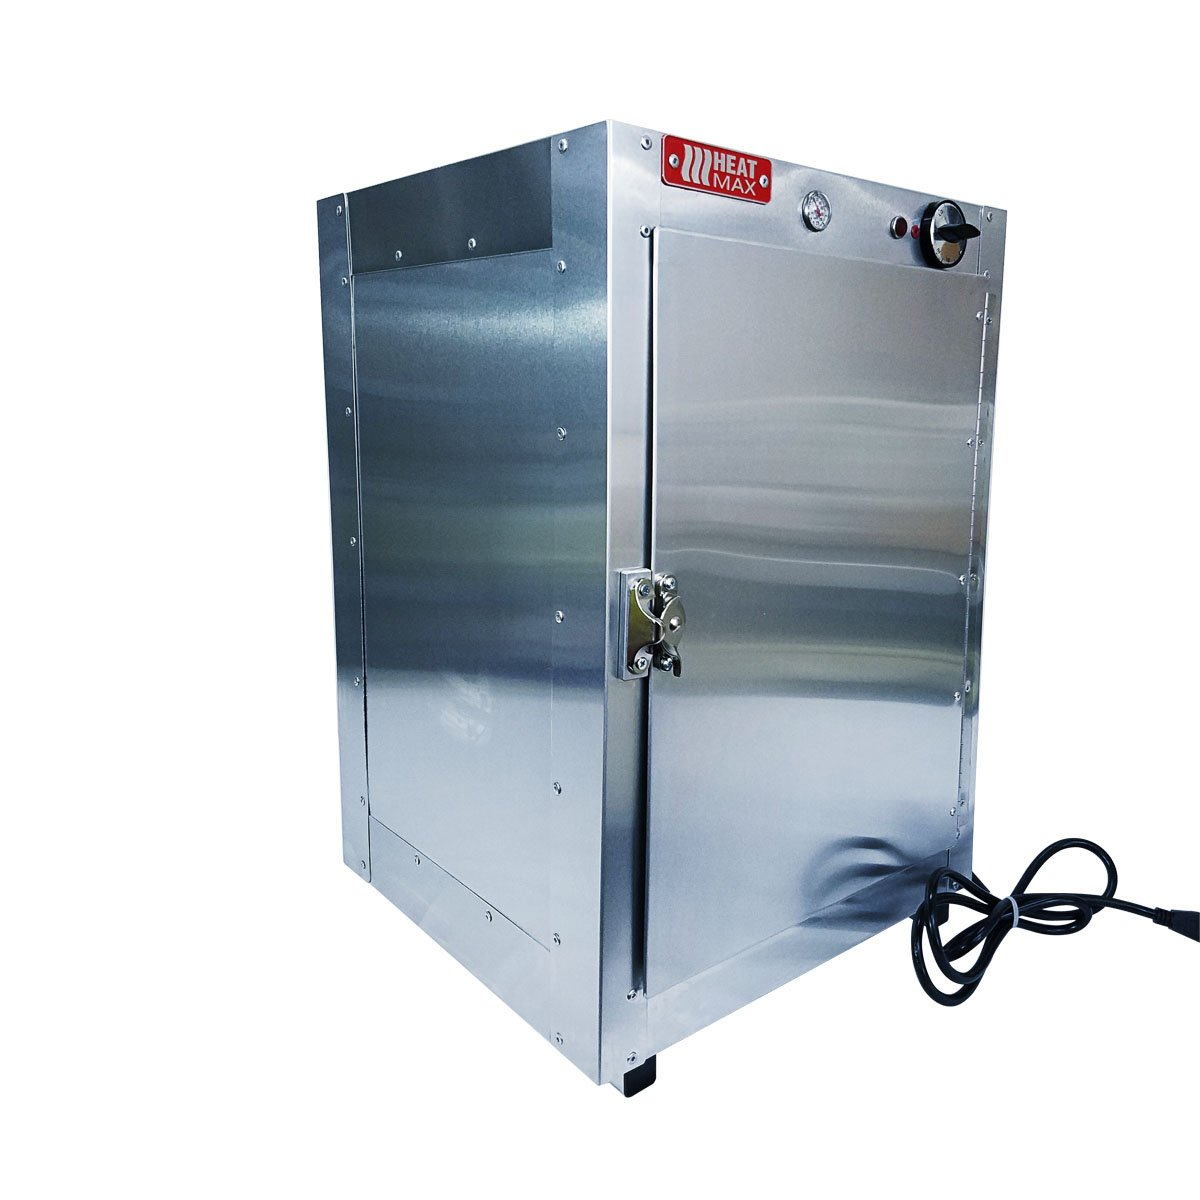 Industrial Food Warming Boxes ~ Heatmax commercial food pastry warming case aluminum